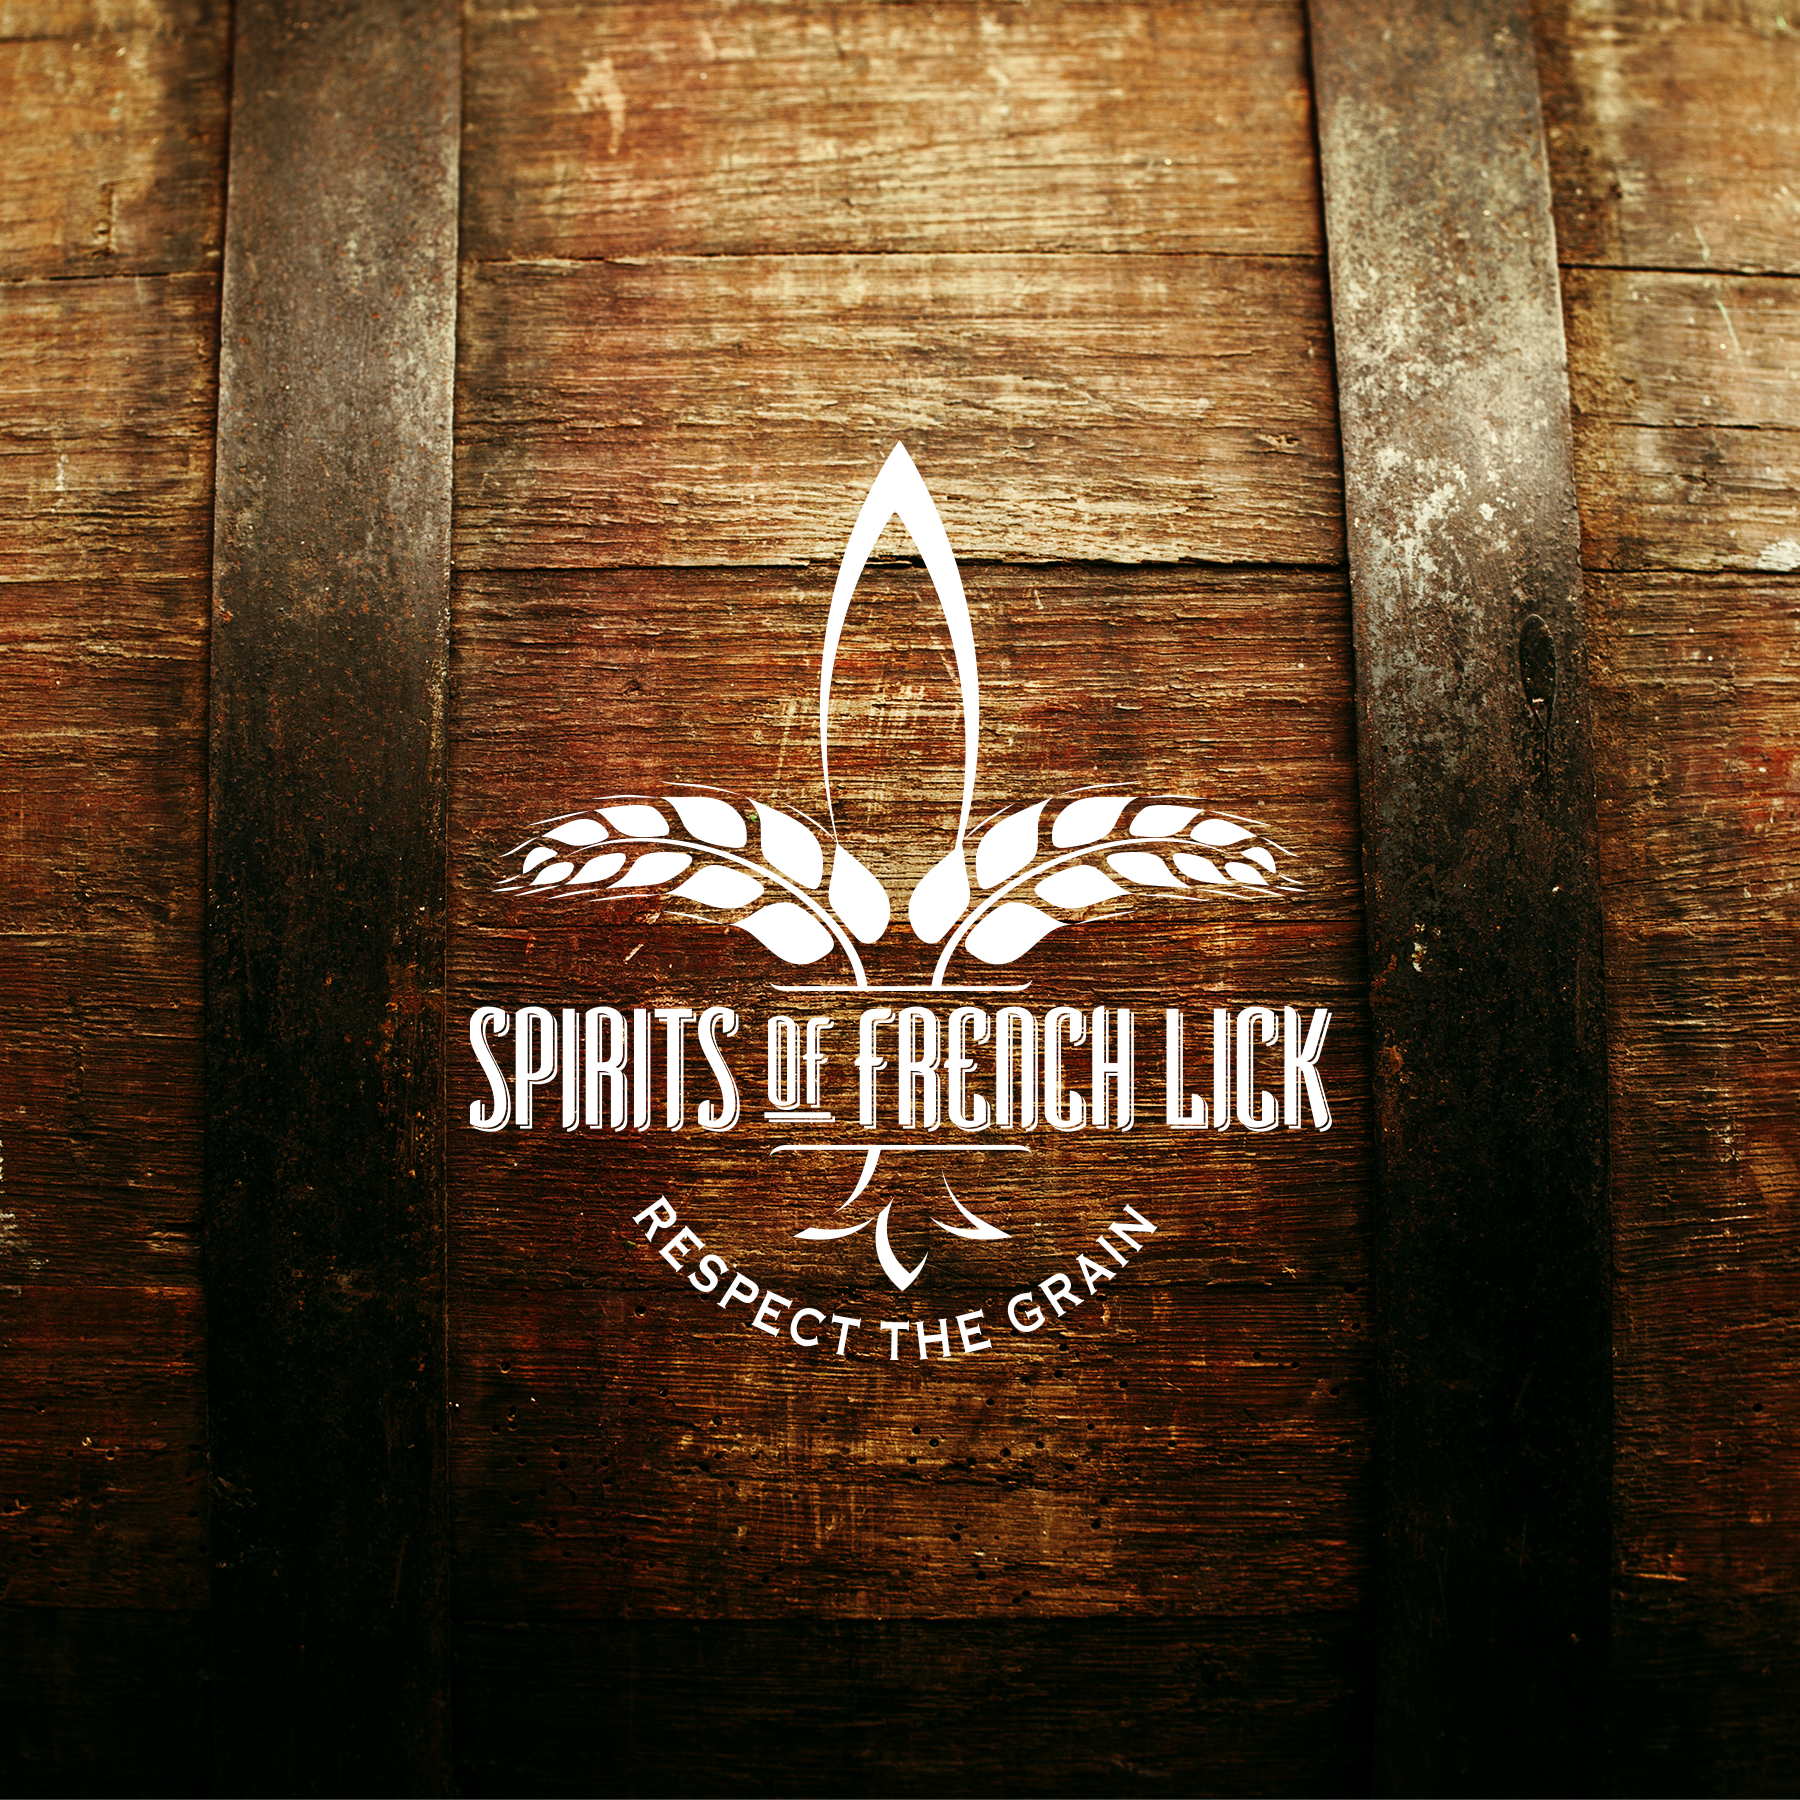 Spirts-of-French-Lick-Slide-1.png